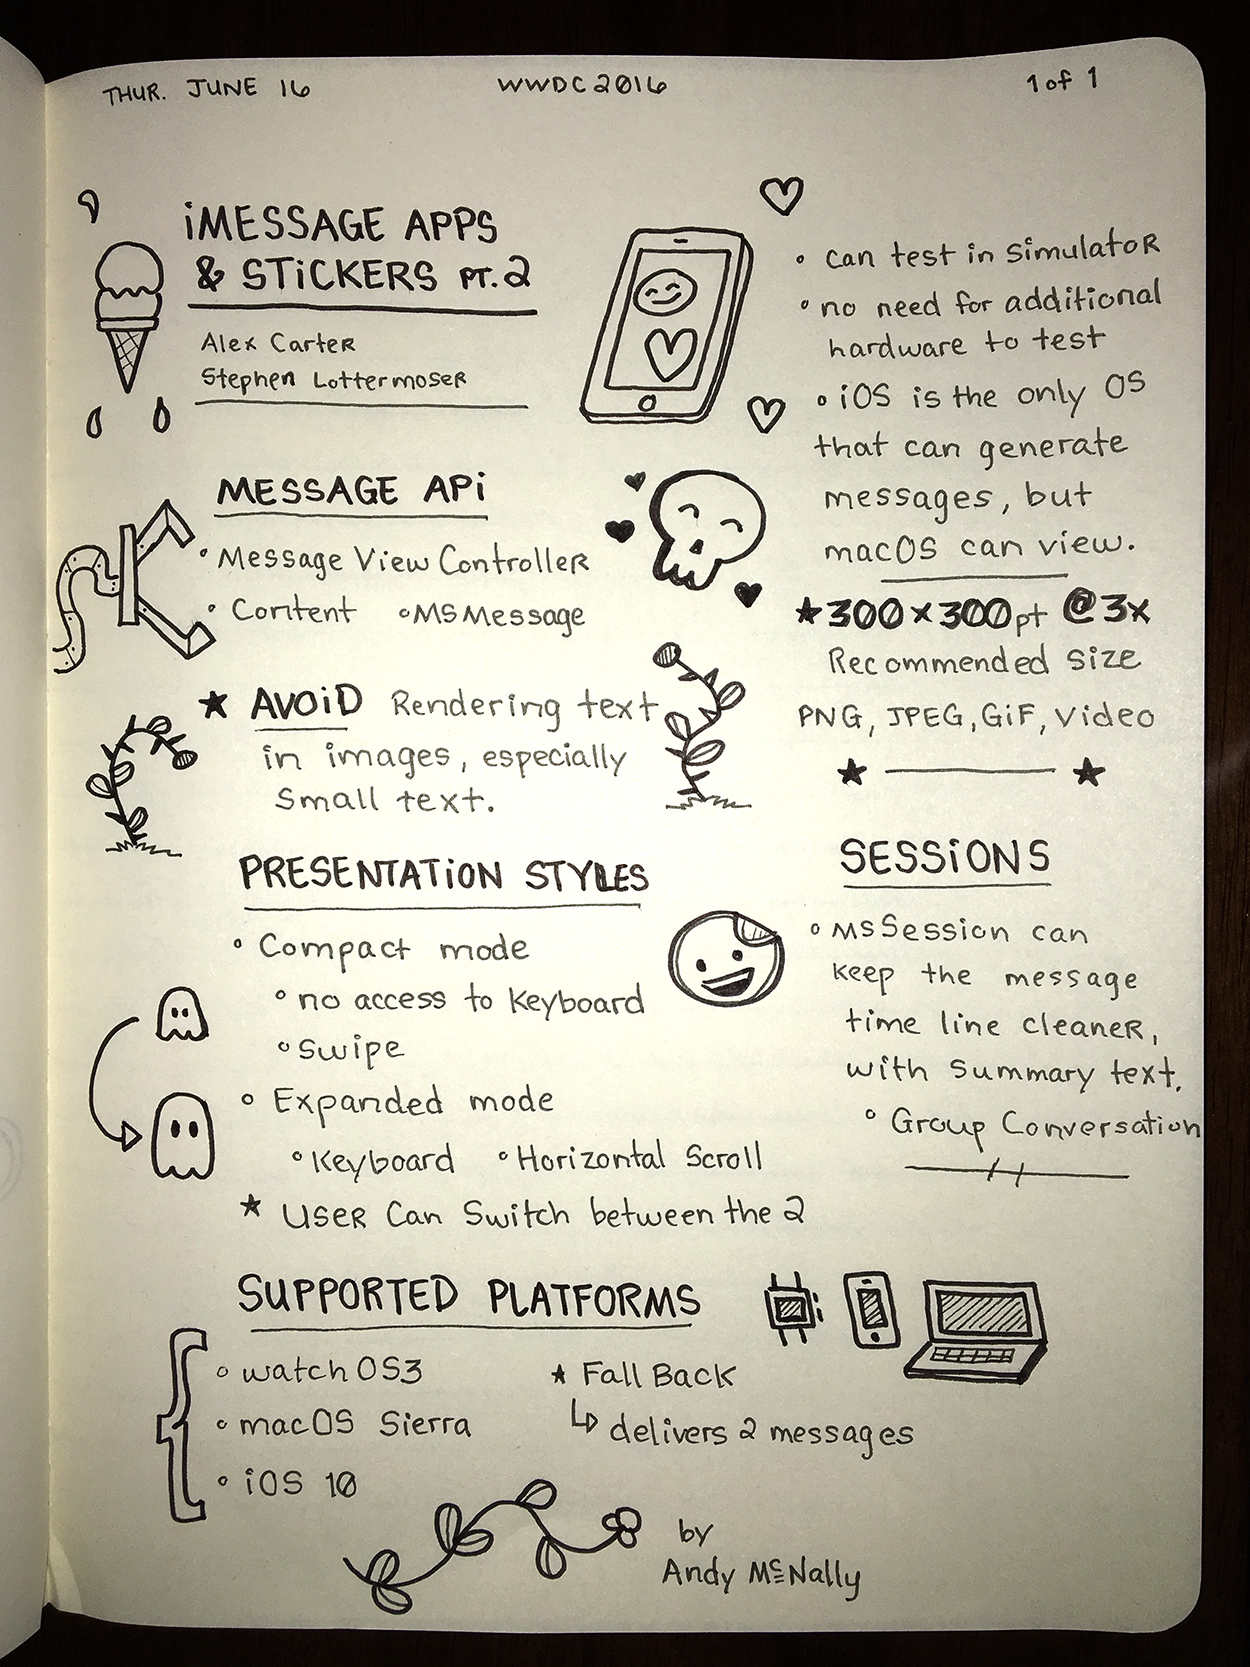 WWDC sketchnotes - iMessage Apps & Stickers Pt. 2